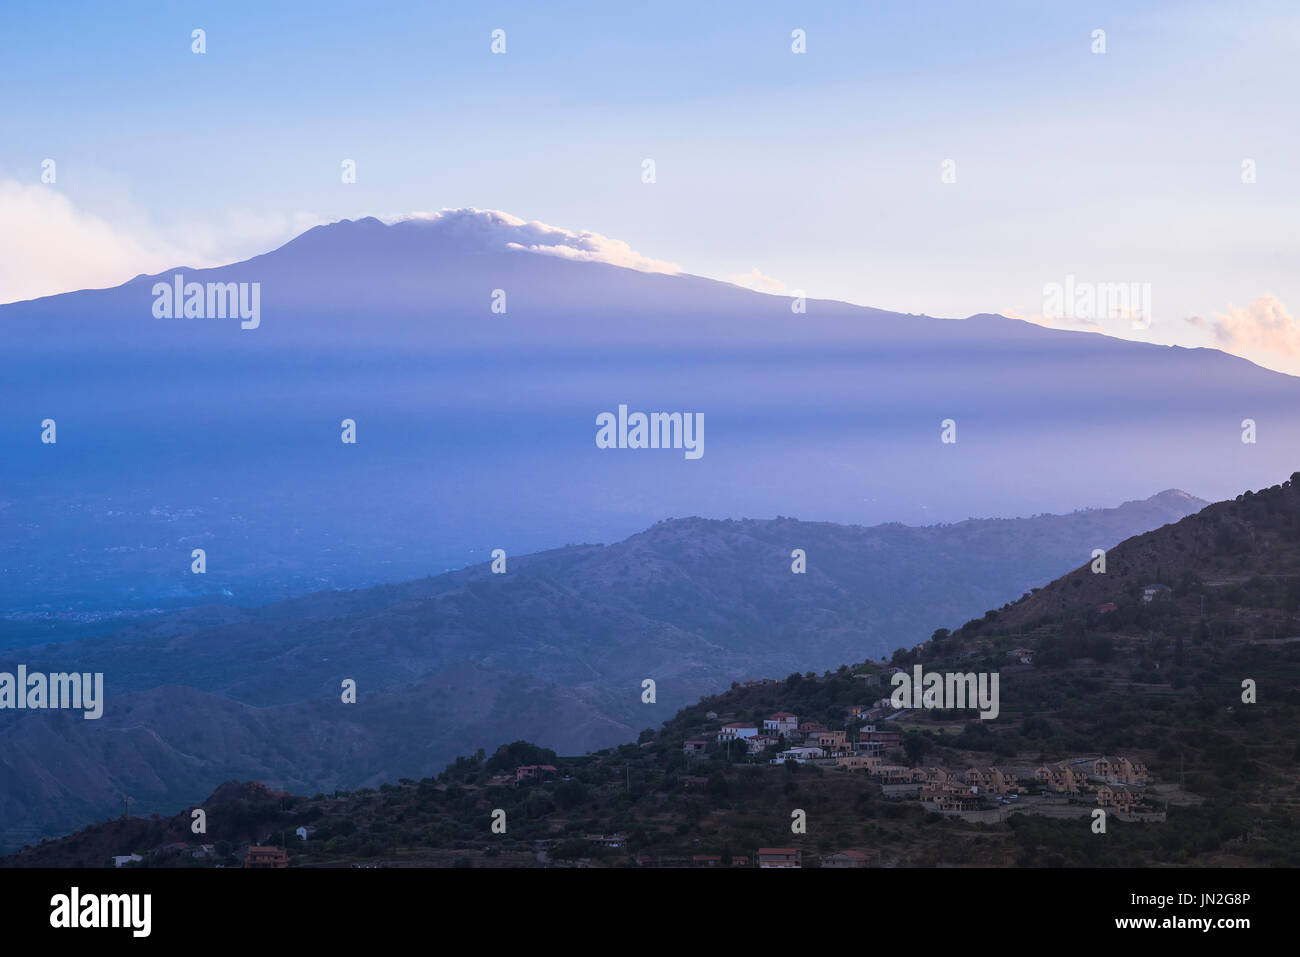 Etna Sicily, rays of the setting sun stream across Mount Etna and the hills surrounding Taormina in Sicily. - Stock Image